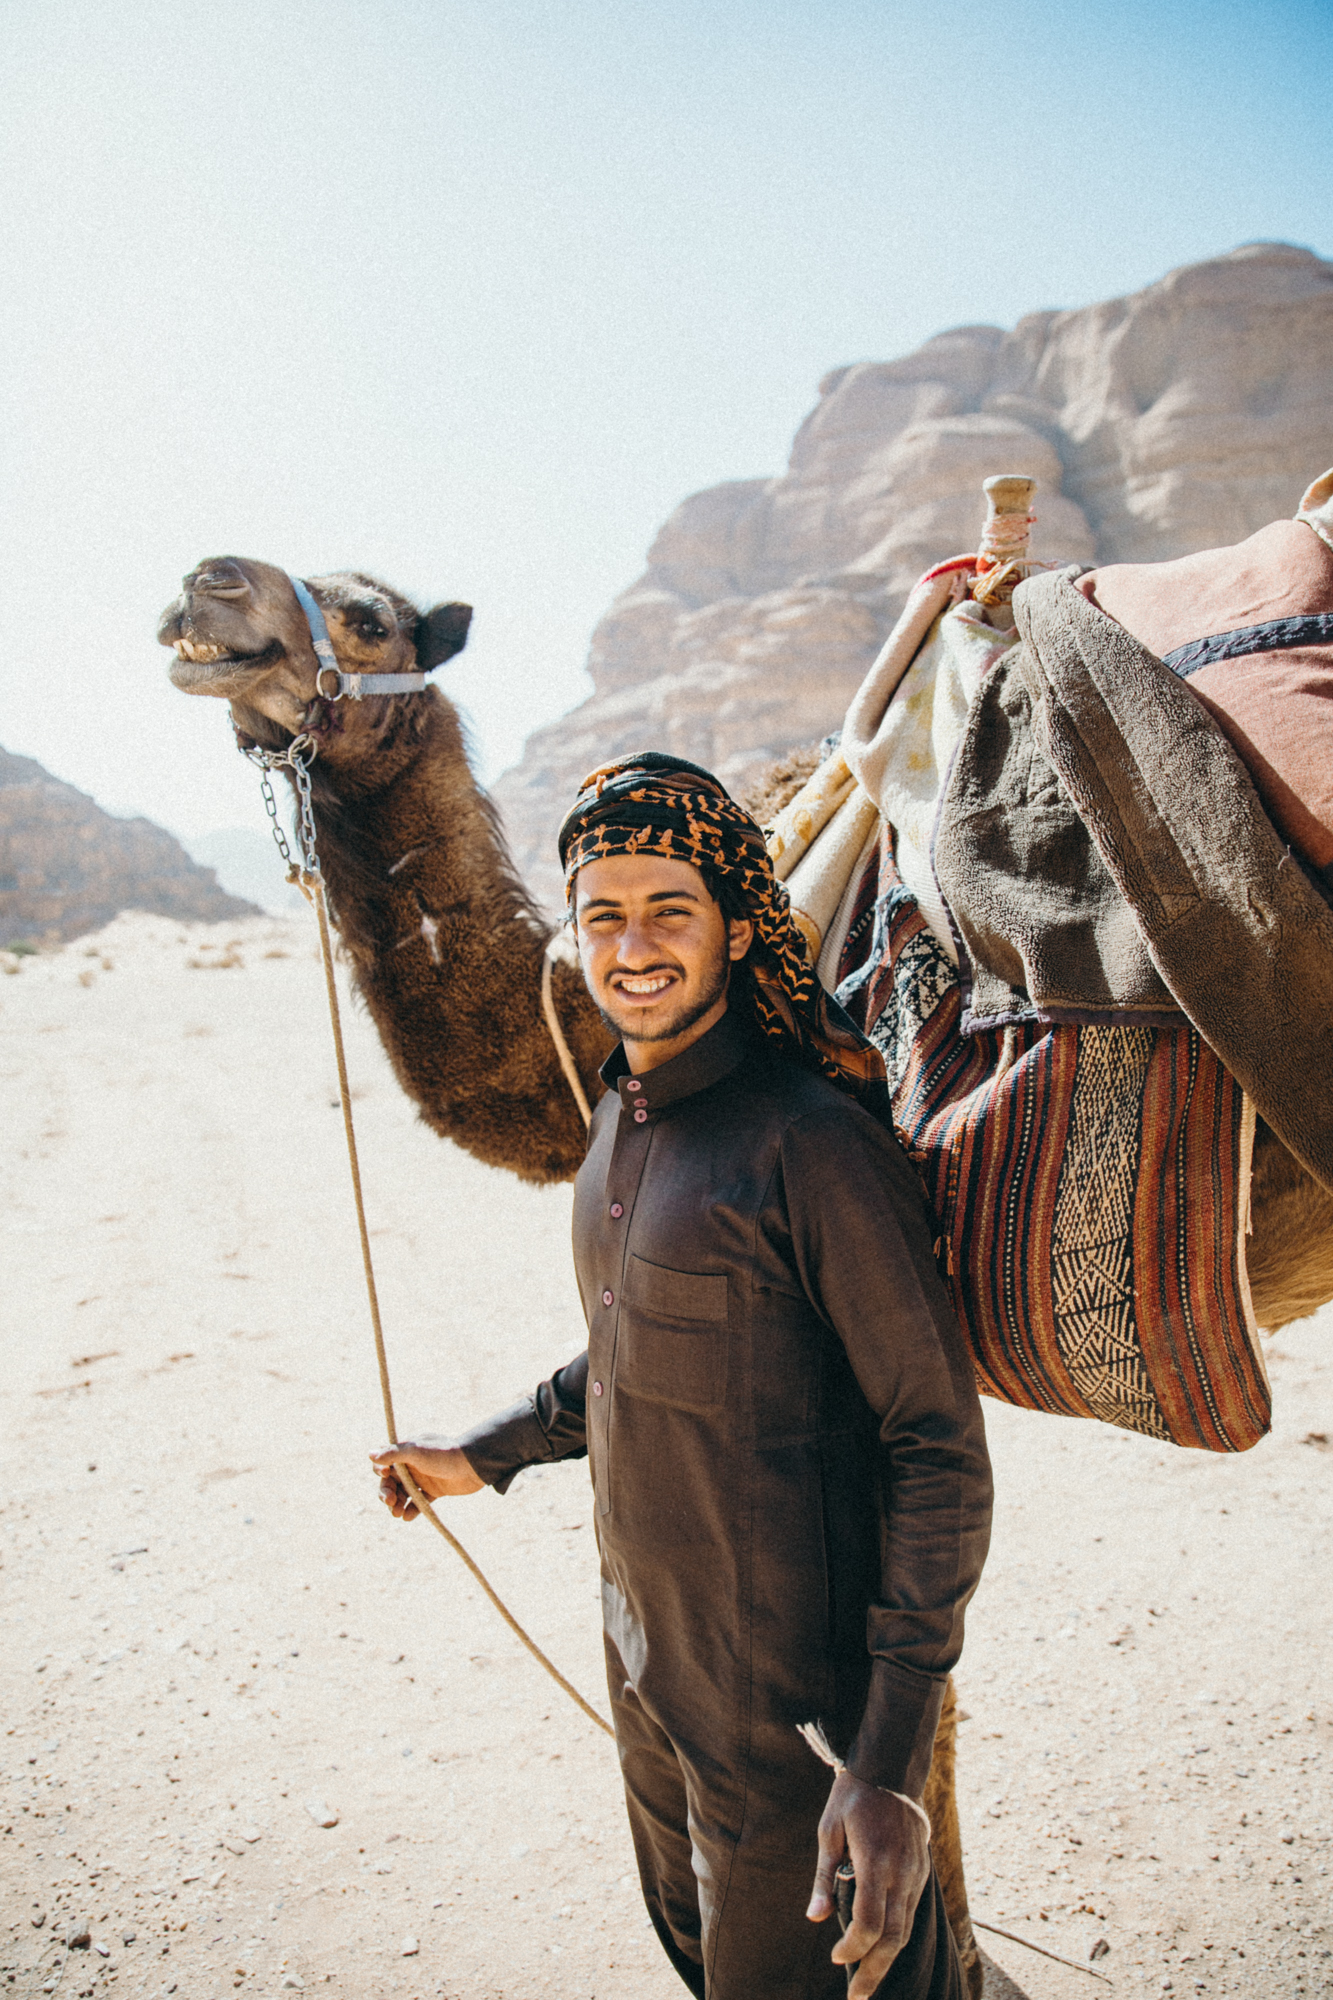 Friendly guy leading his camels – look at that camel's smile.. hahah.